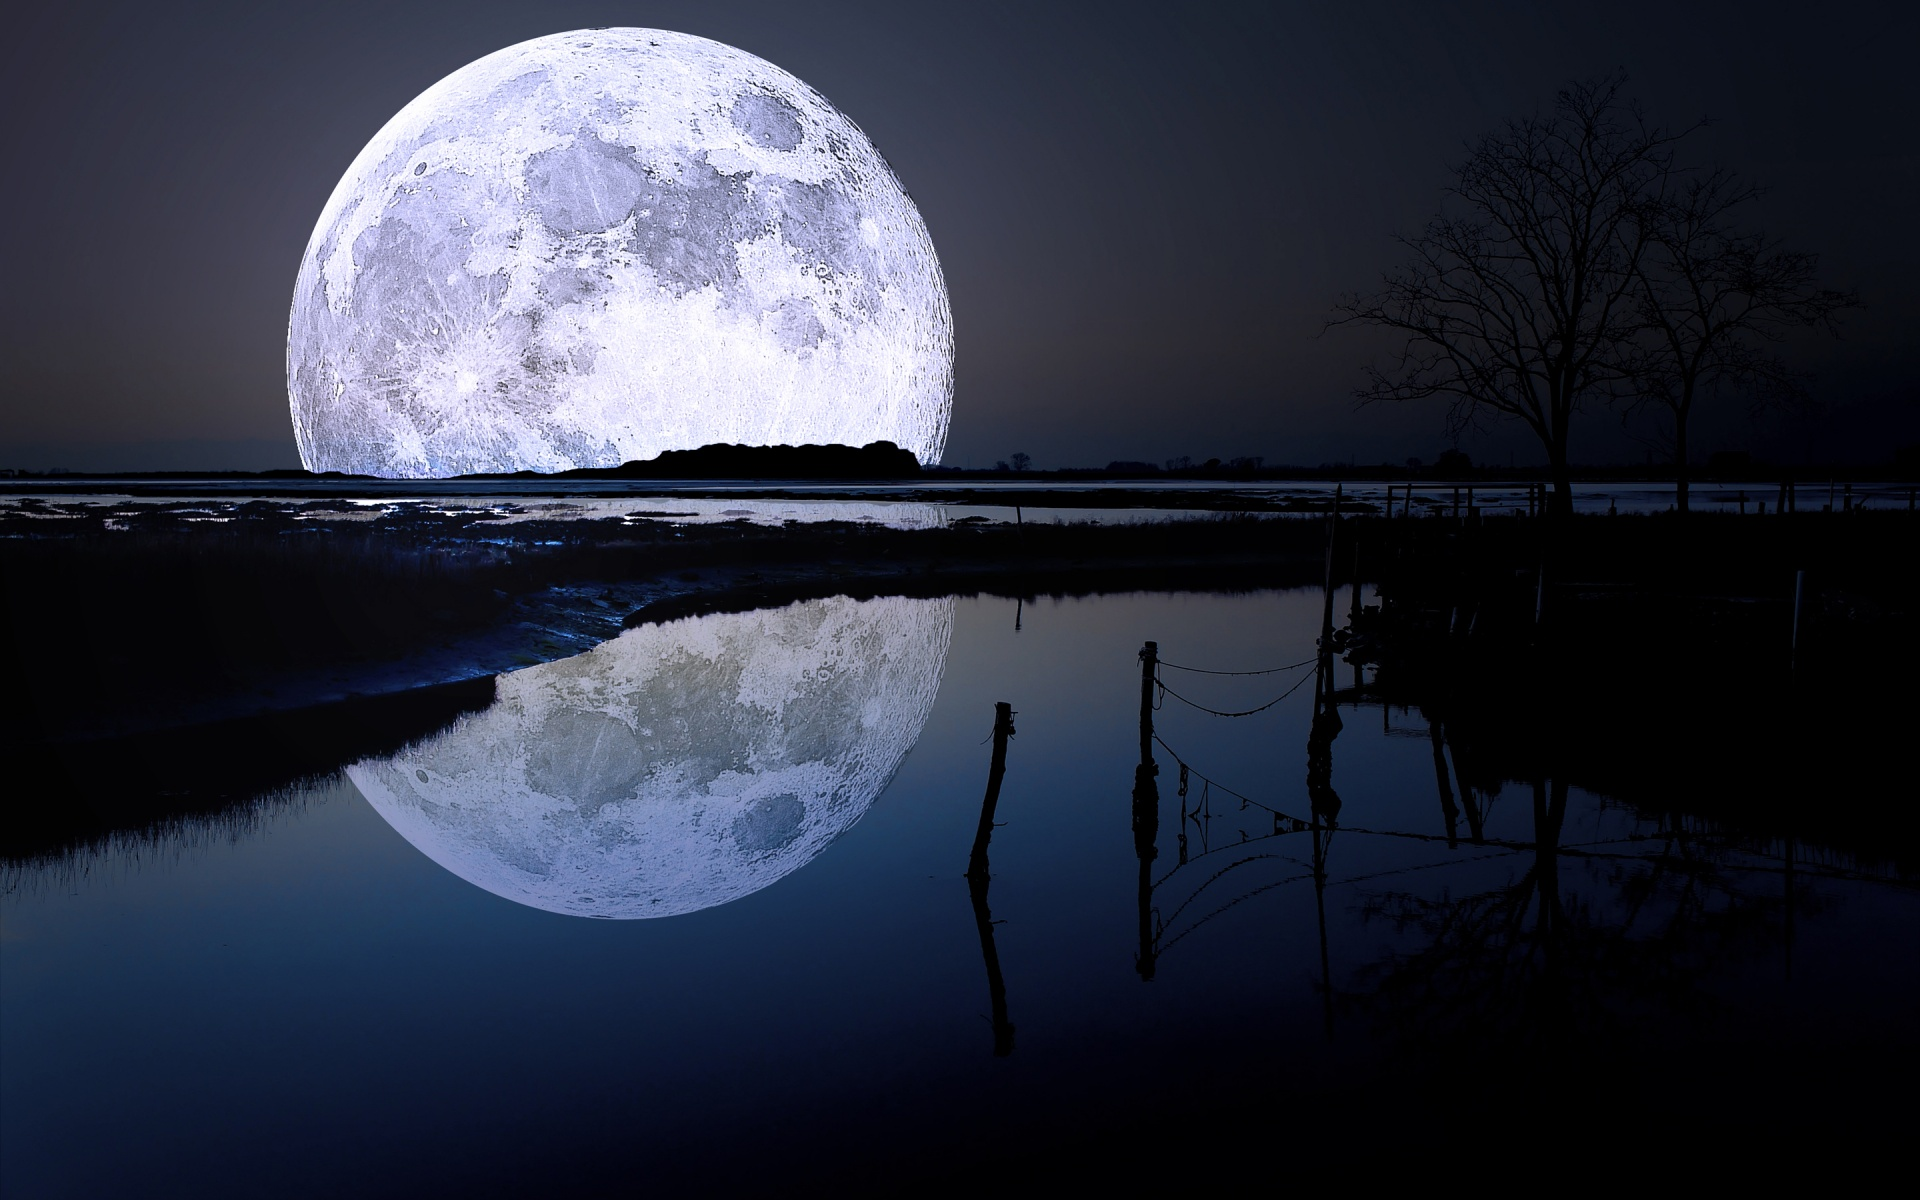 full moon wallpapers in jpg format for free download